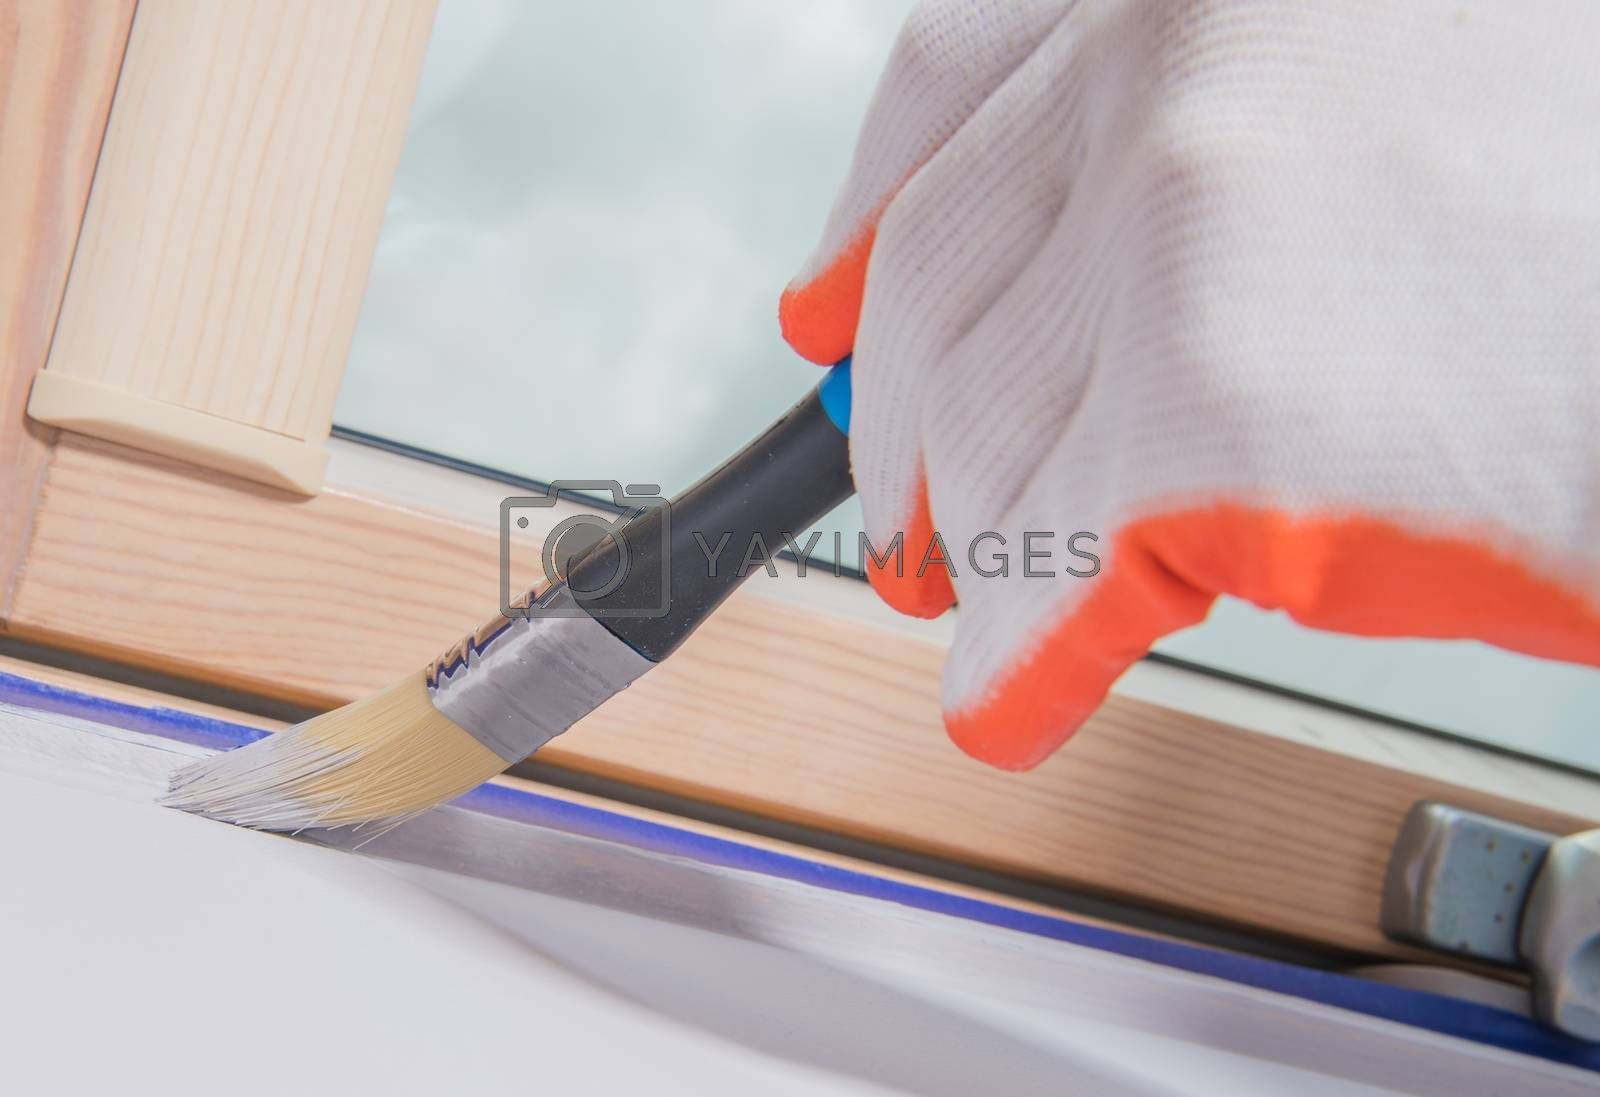 Royalty free image of Painting Room Details by welcomia